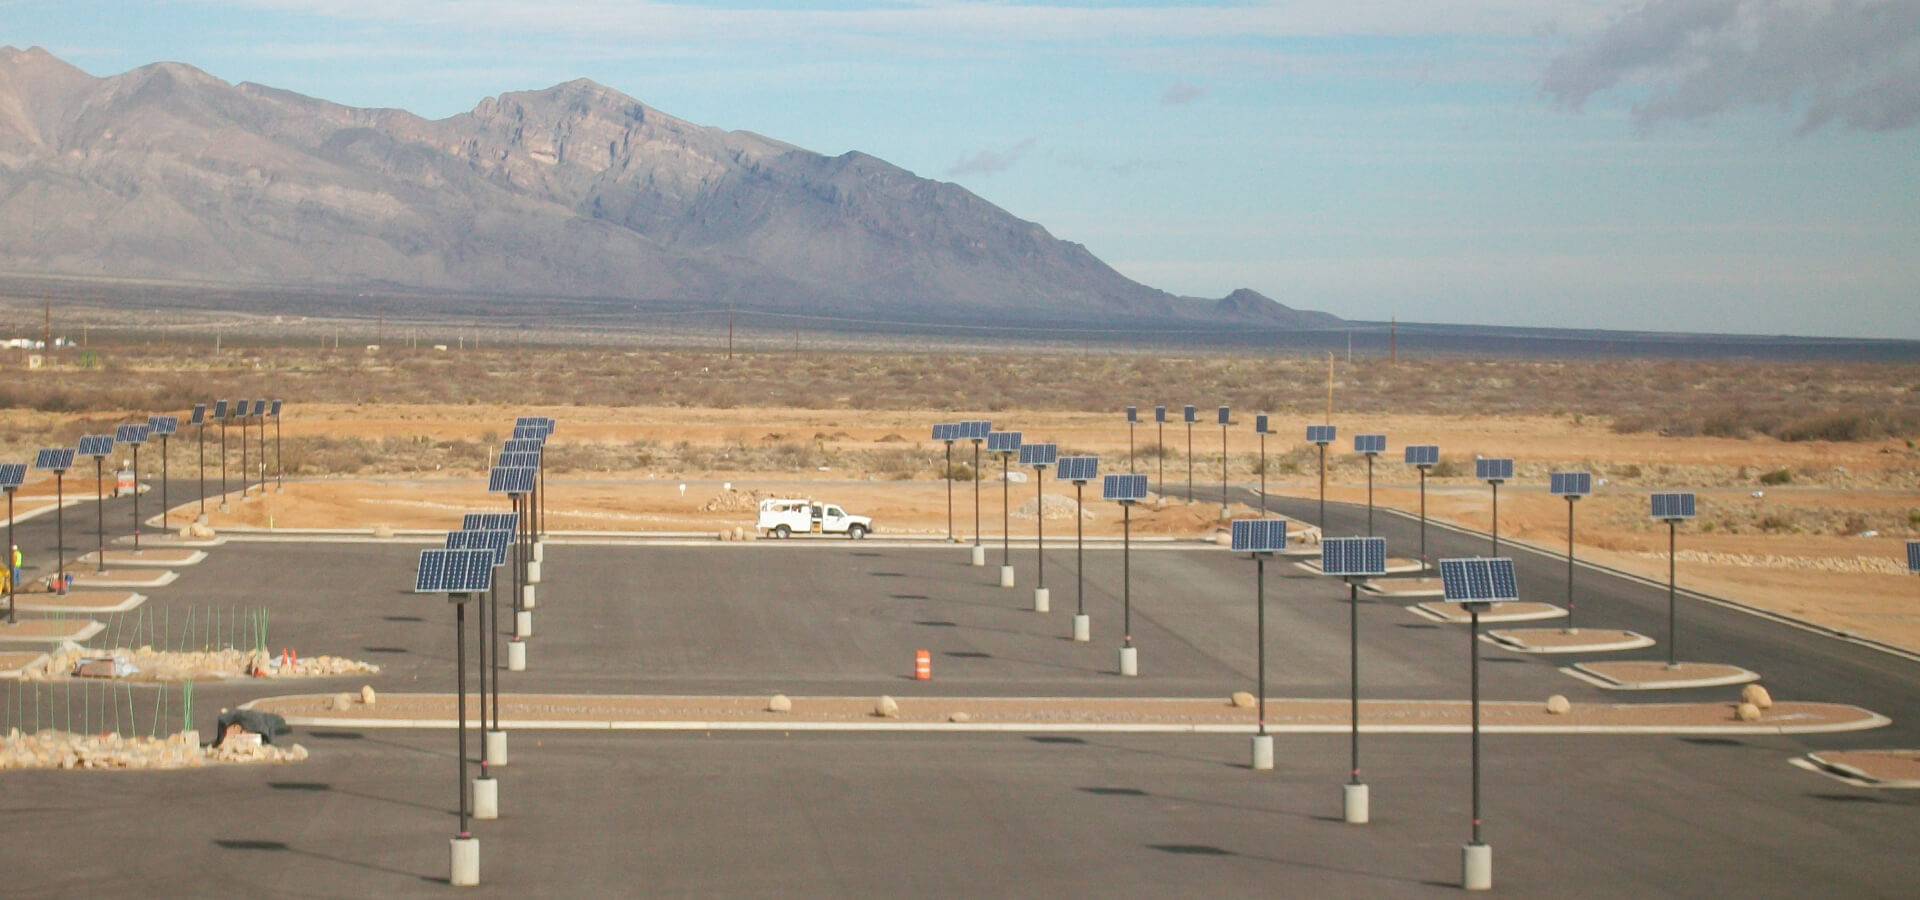 Commercial Solar Powered Led Parking Lot Lighting Systems By Sepco Build A Outdoor Floodlight Dti Efficient Power